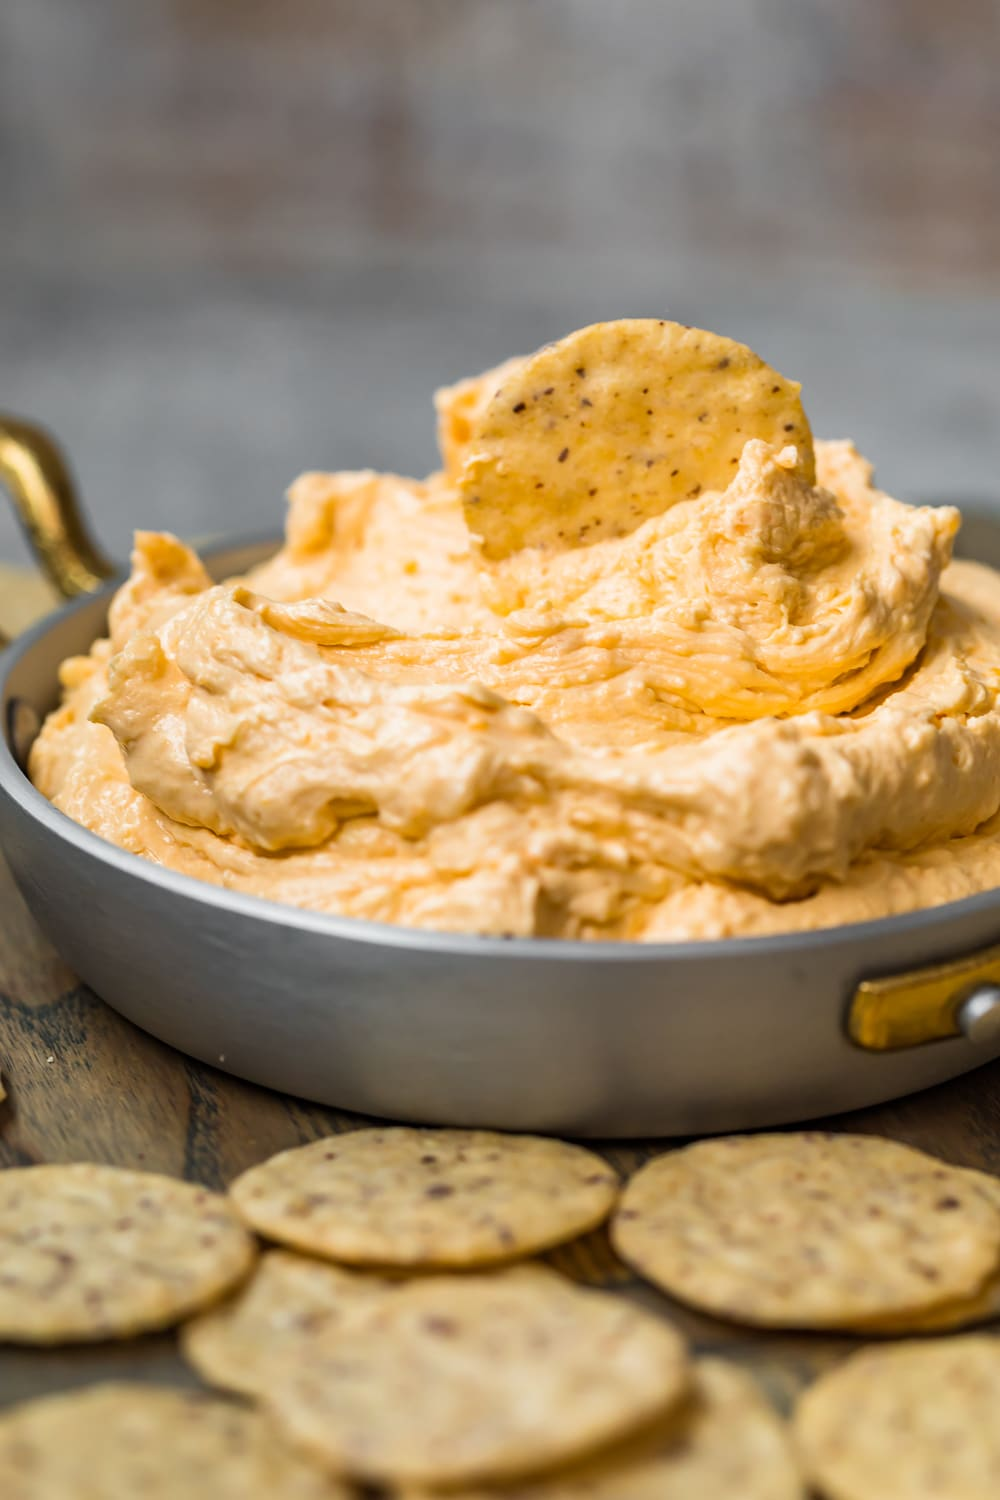 Beer Cheese Dip served in a silver bowl with crackers